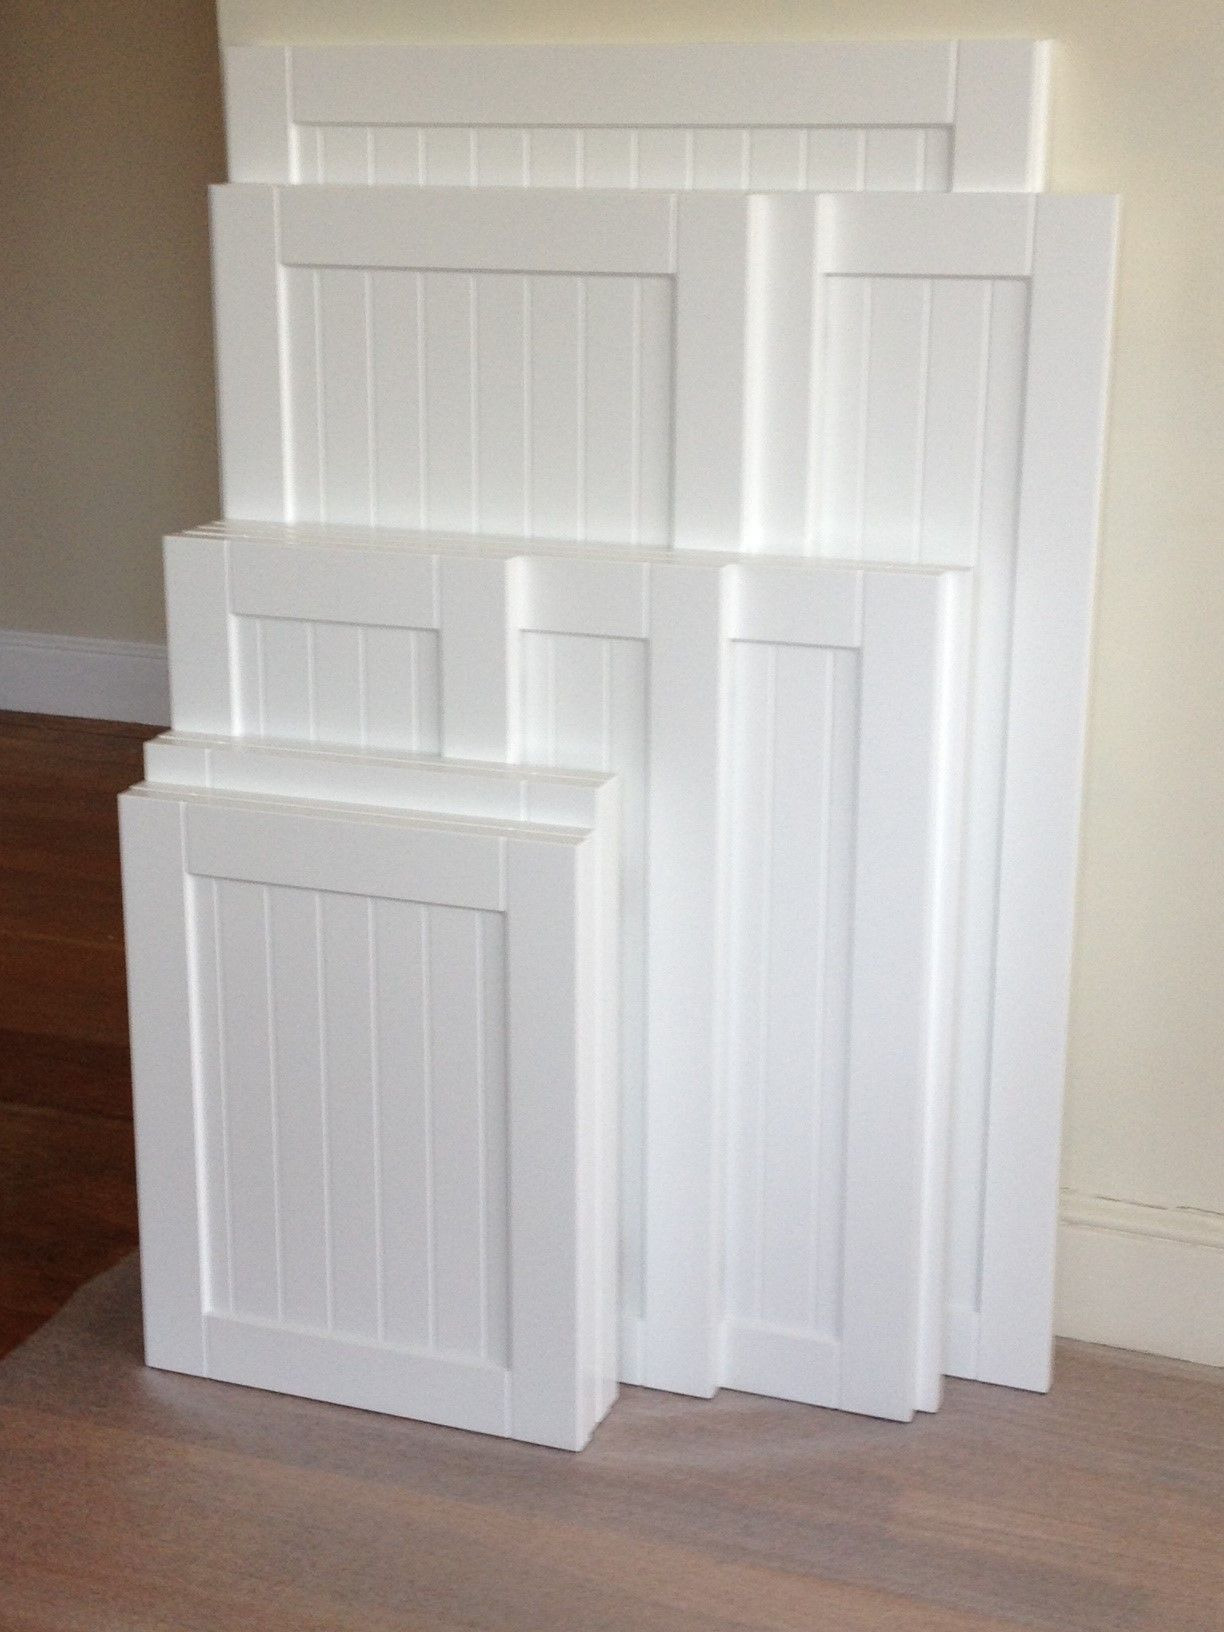 Replacement Kitchen Cabinet Doors White Best Of Kitchen Cabinet Refacing the Process